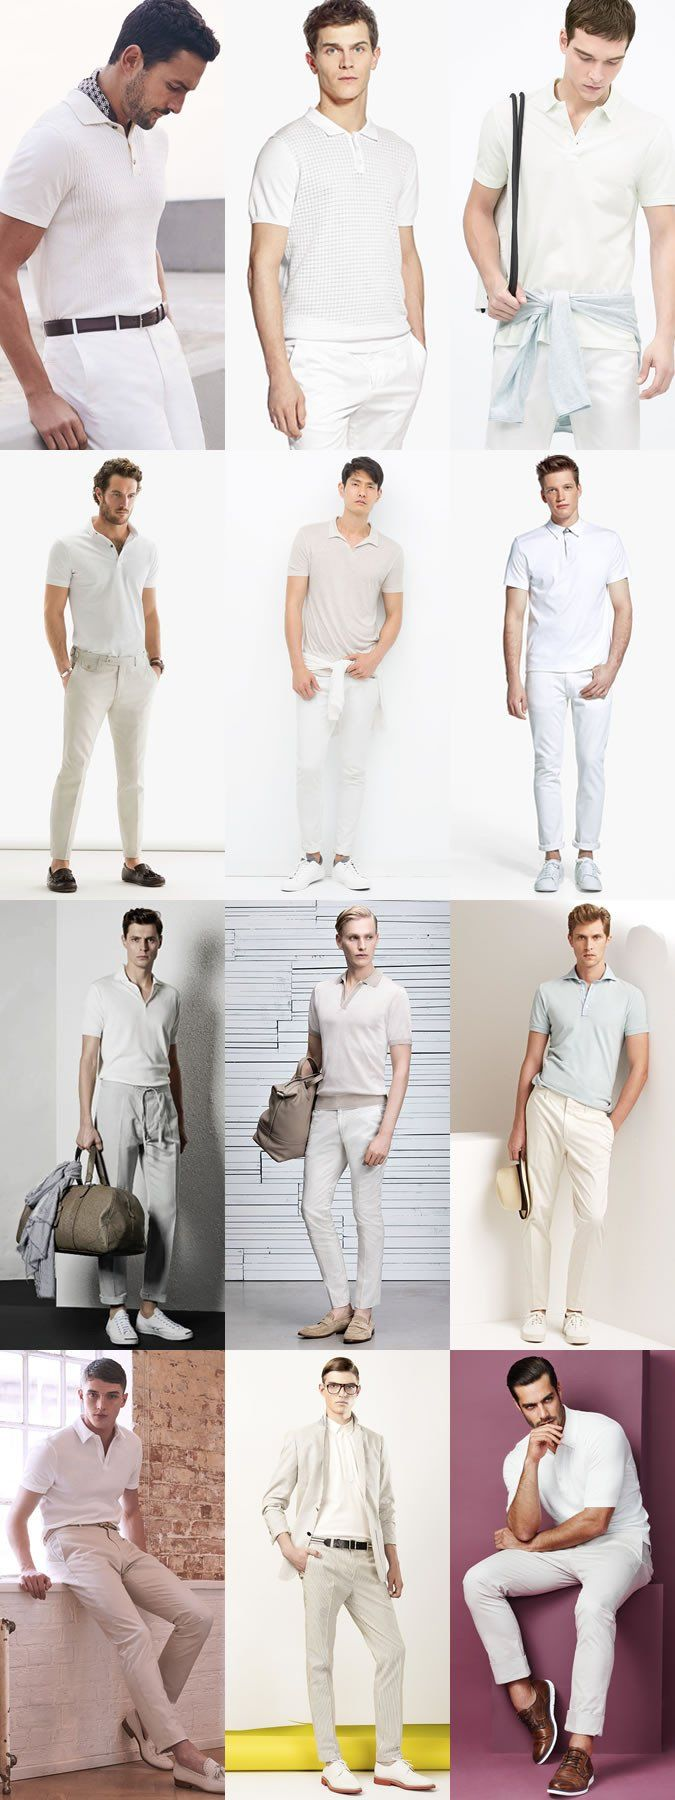 cdb58b978f5 How To Wear A Polo Shirt For Men. 5 Awesome Looks You Can Try – LIFESTYLE  BY PS